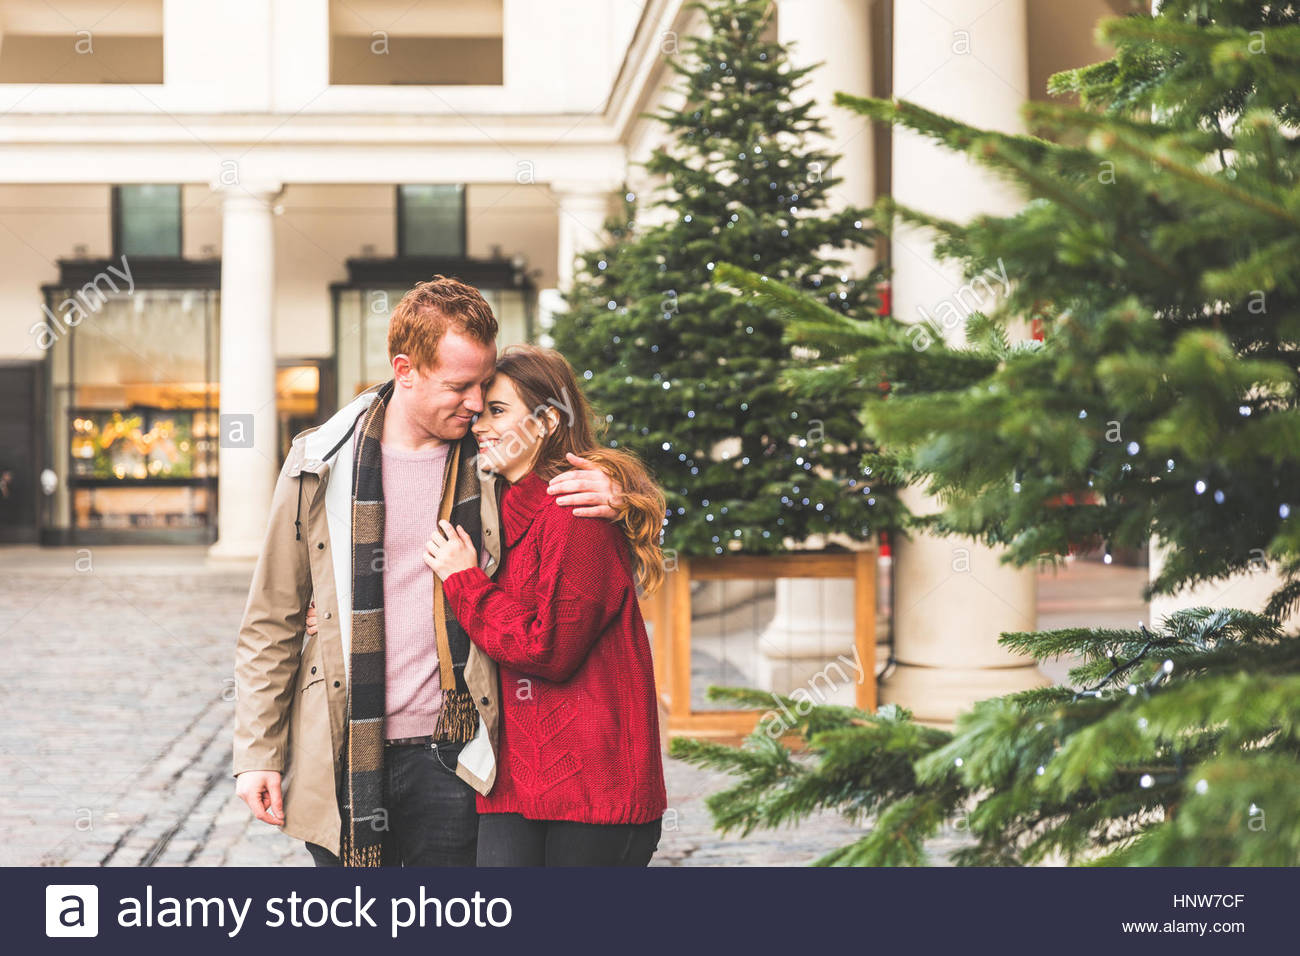 Couple hugging, Covent Garden, Londres, UK Photo Stock